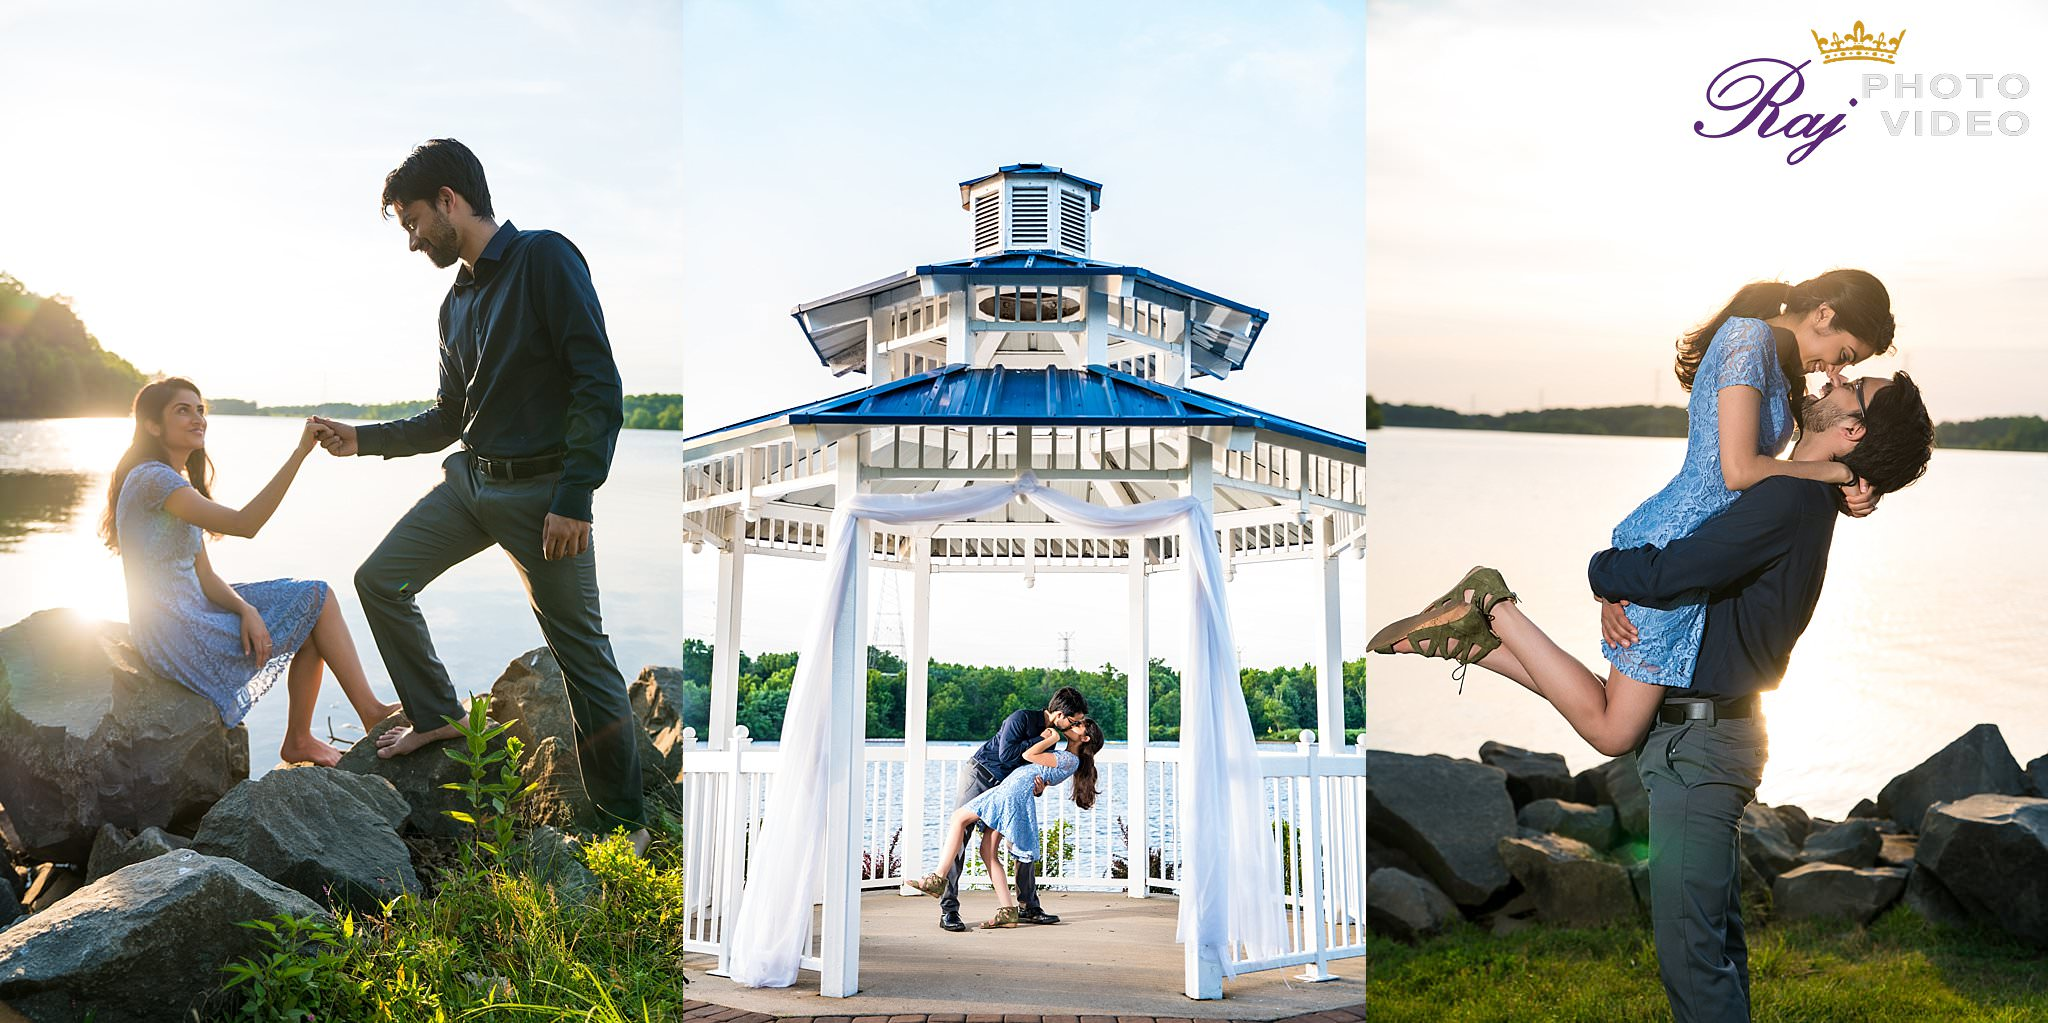 Mercer-County-Park-Engagement-Shoot-Shaili-Rahul-12_Raj_Photo_Video.jpg